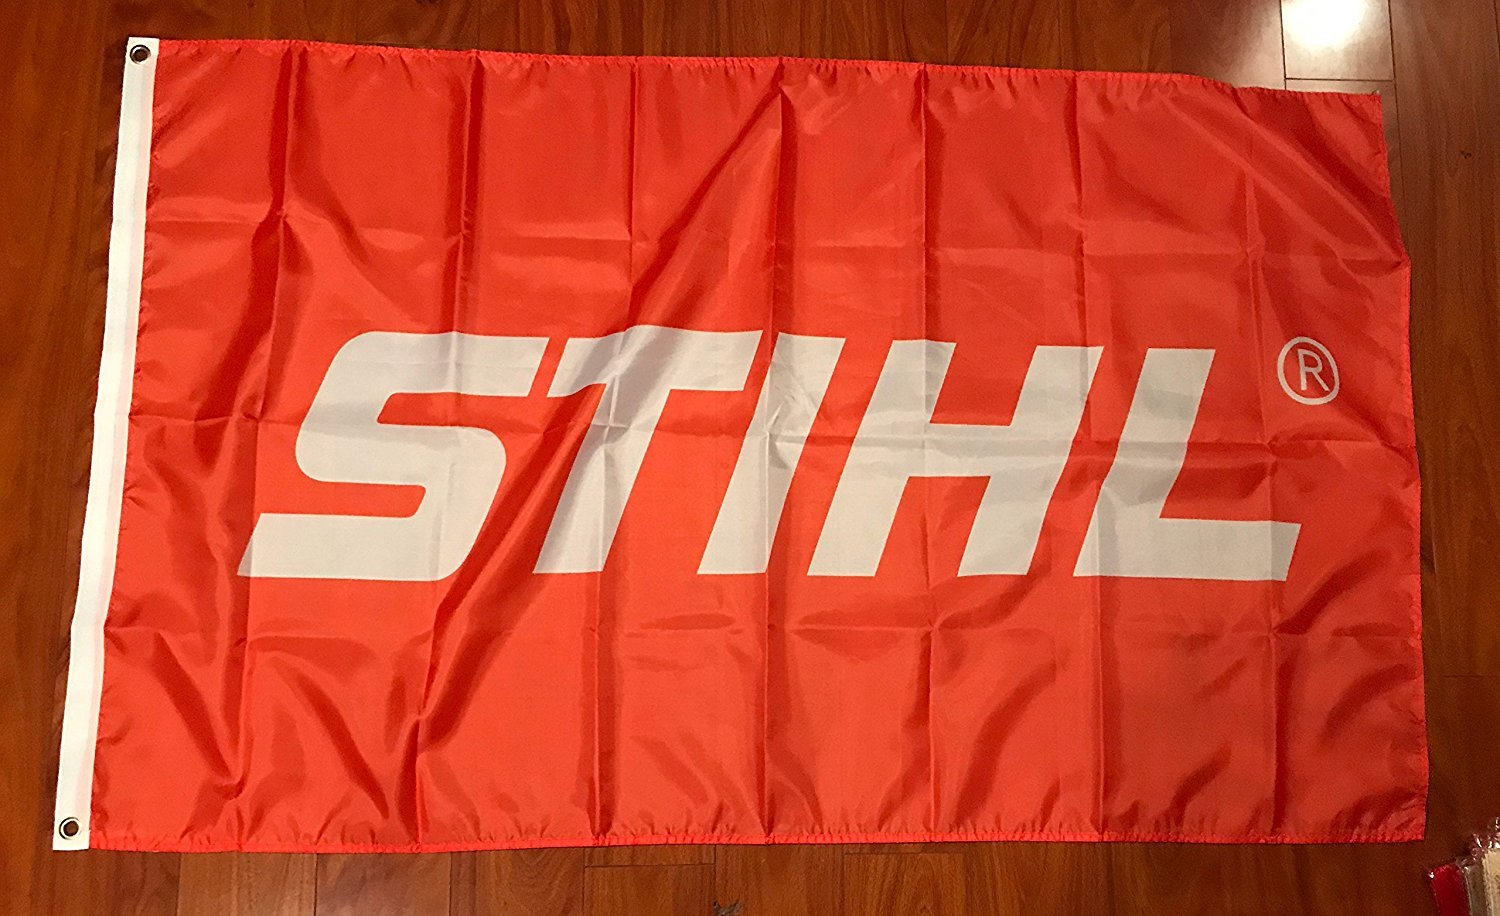 Stihl Flag Orange Banner Chainsaw Chain Saws Saw Tools Equipment 3 x 5 Feet